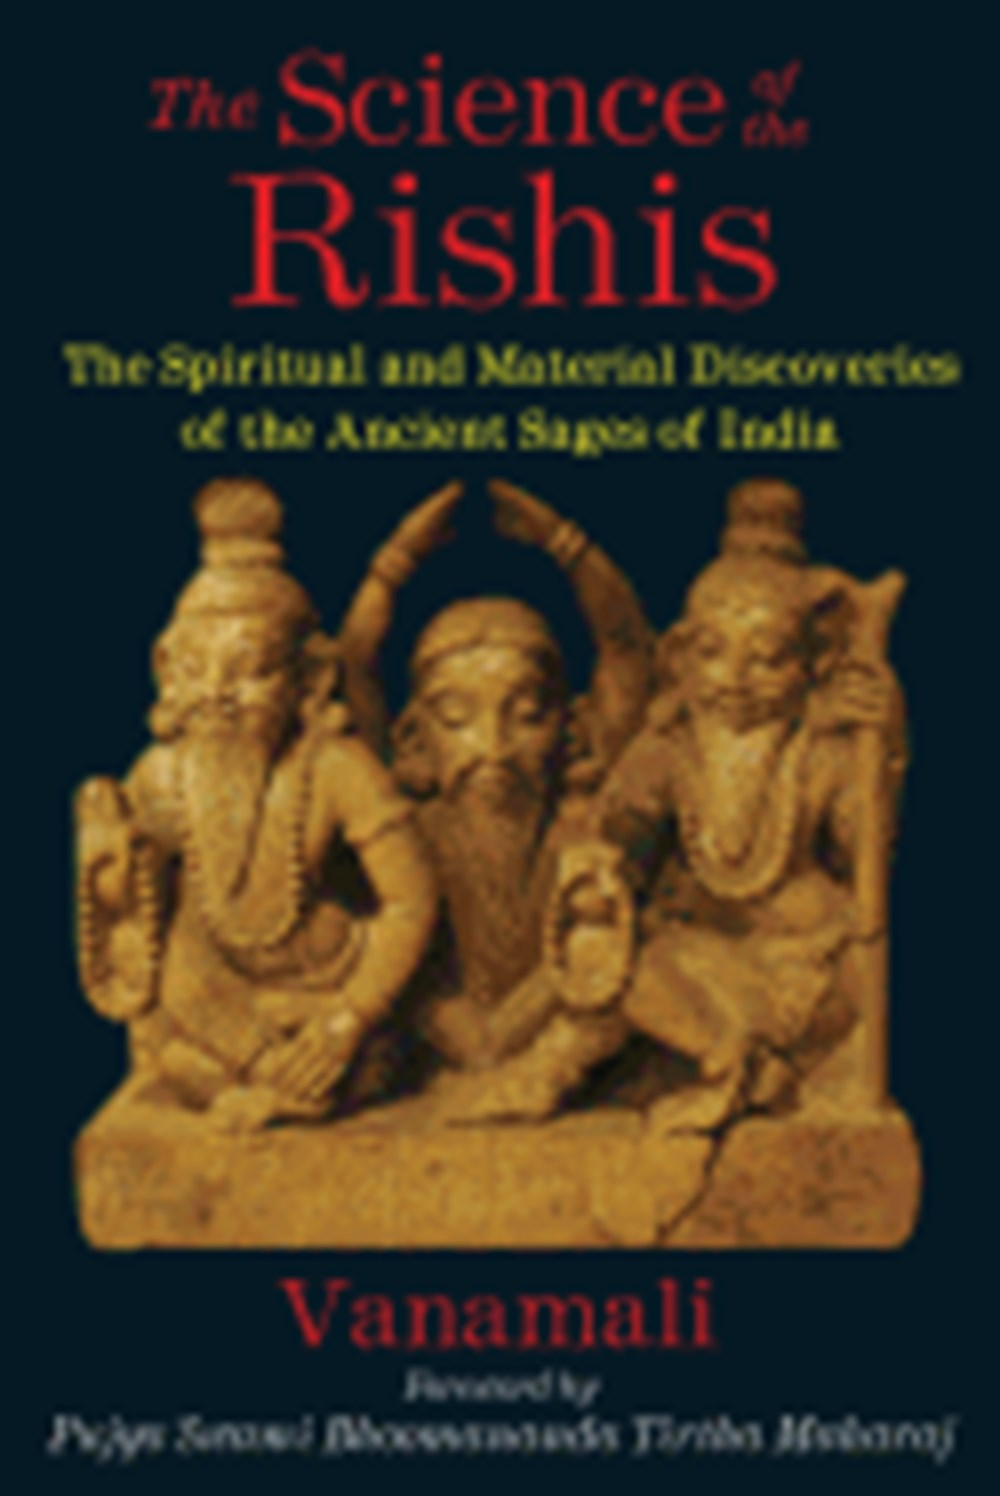 Science of the Rishis The Spiritual and Material Discoveries of the Ancient Sages of India (Uism<